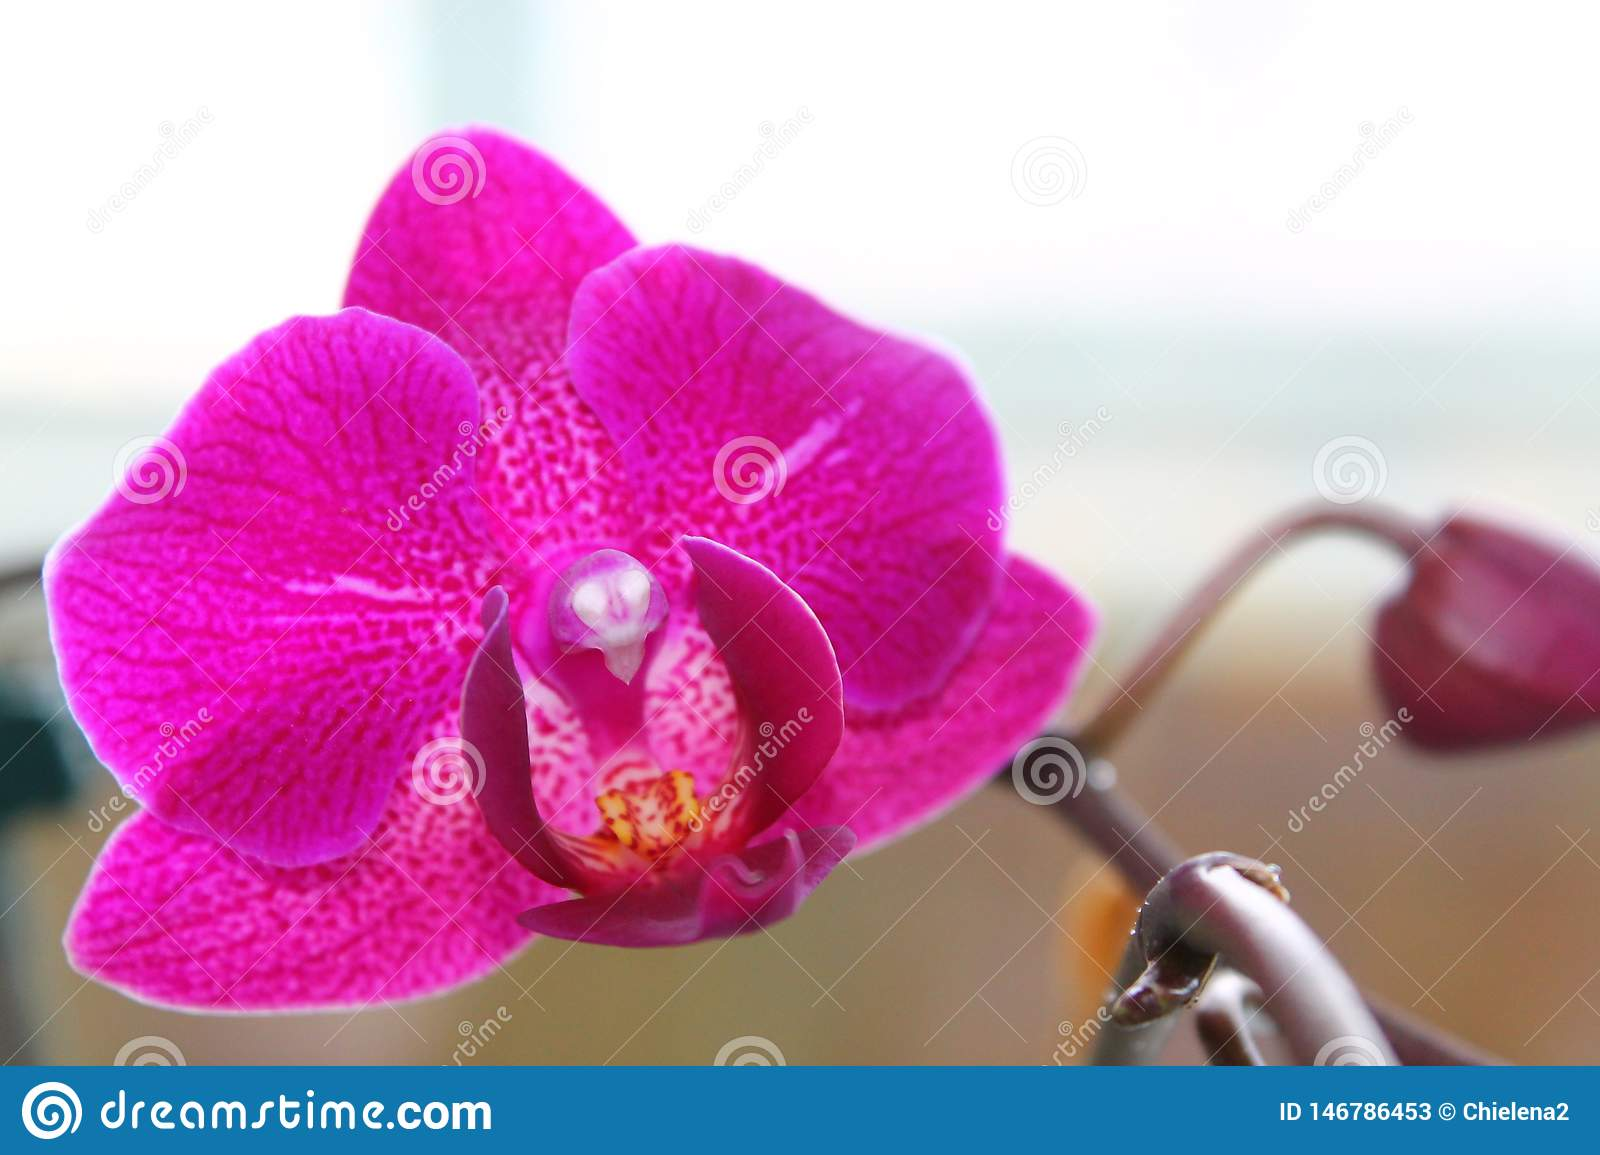 Delicate scarlet pink flower phalaenopsis orchid  on white background.